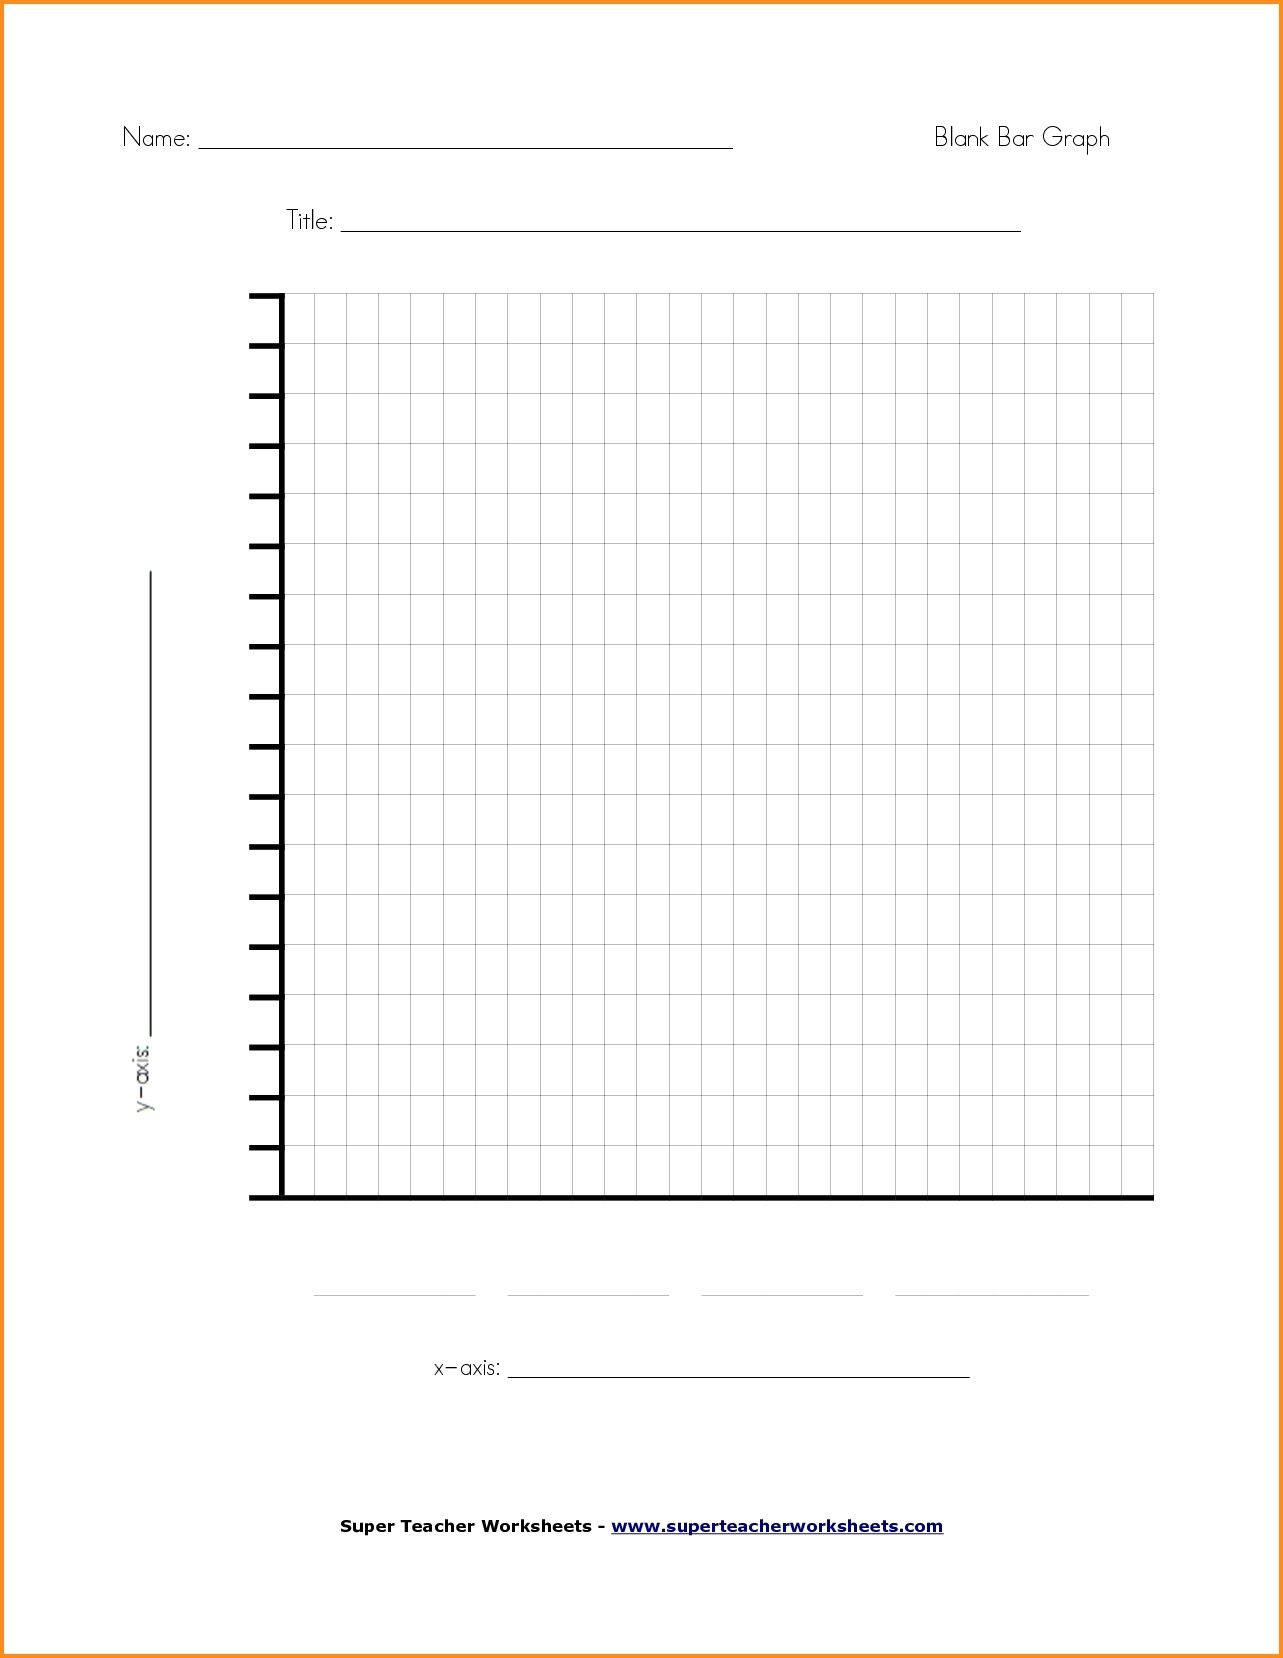 Bar Graph Worksheets Middle School Blank Chart Template for Teachers